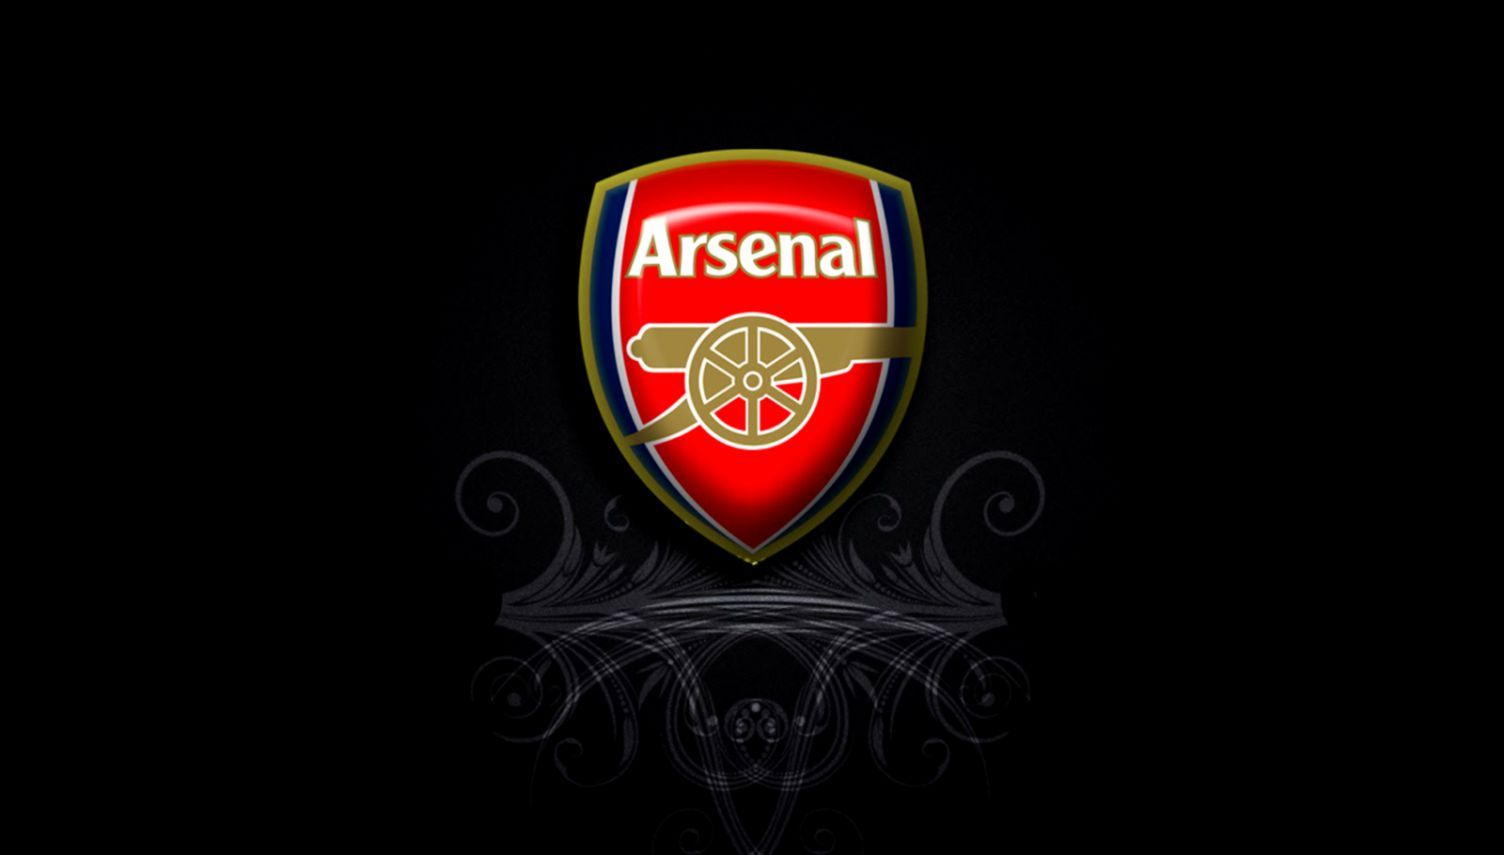 Arsenal Logo Desktop Wallpapers Top Free Arsenal Logo